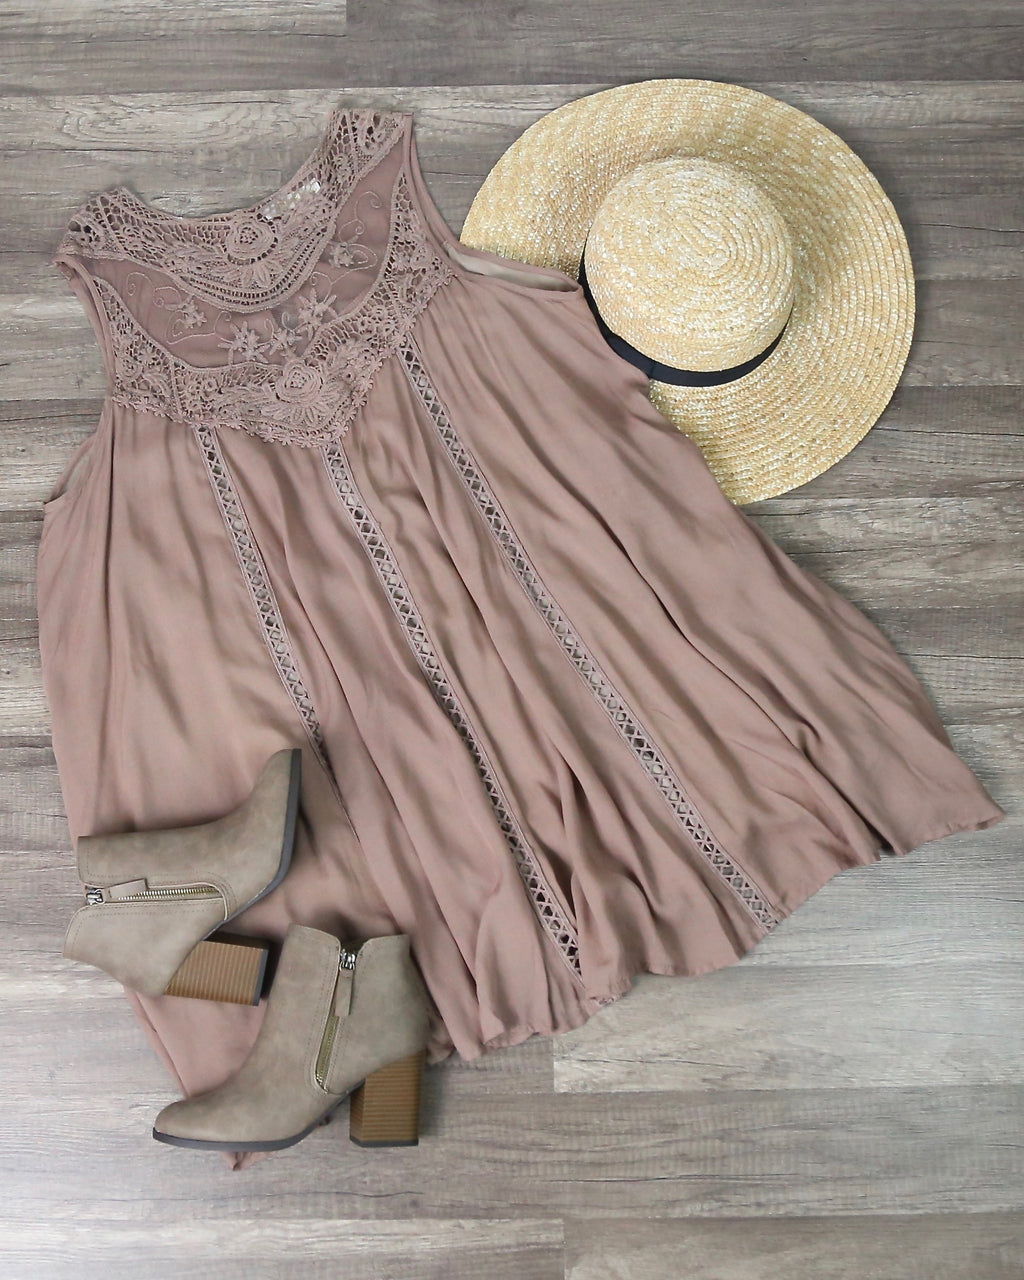 Boho Embroidered Lace Flowy Casual Dress in Taupe